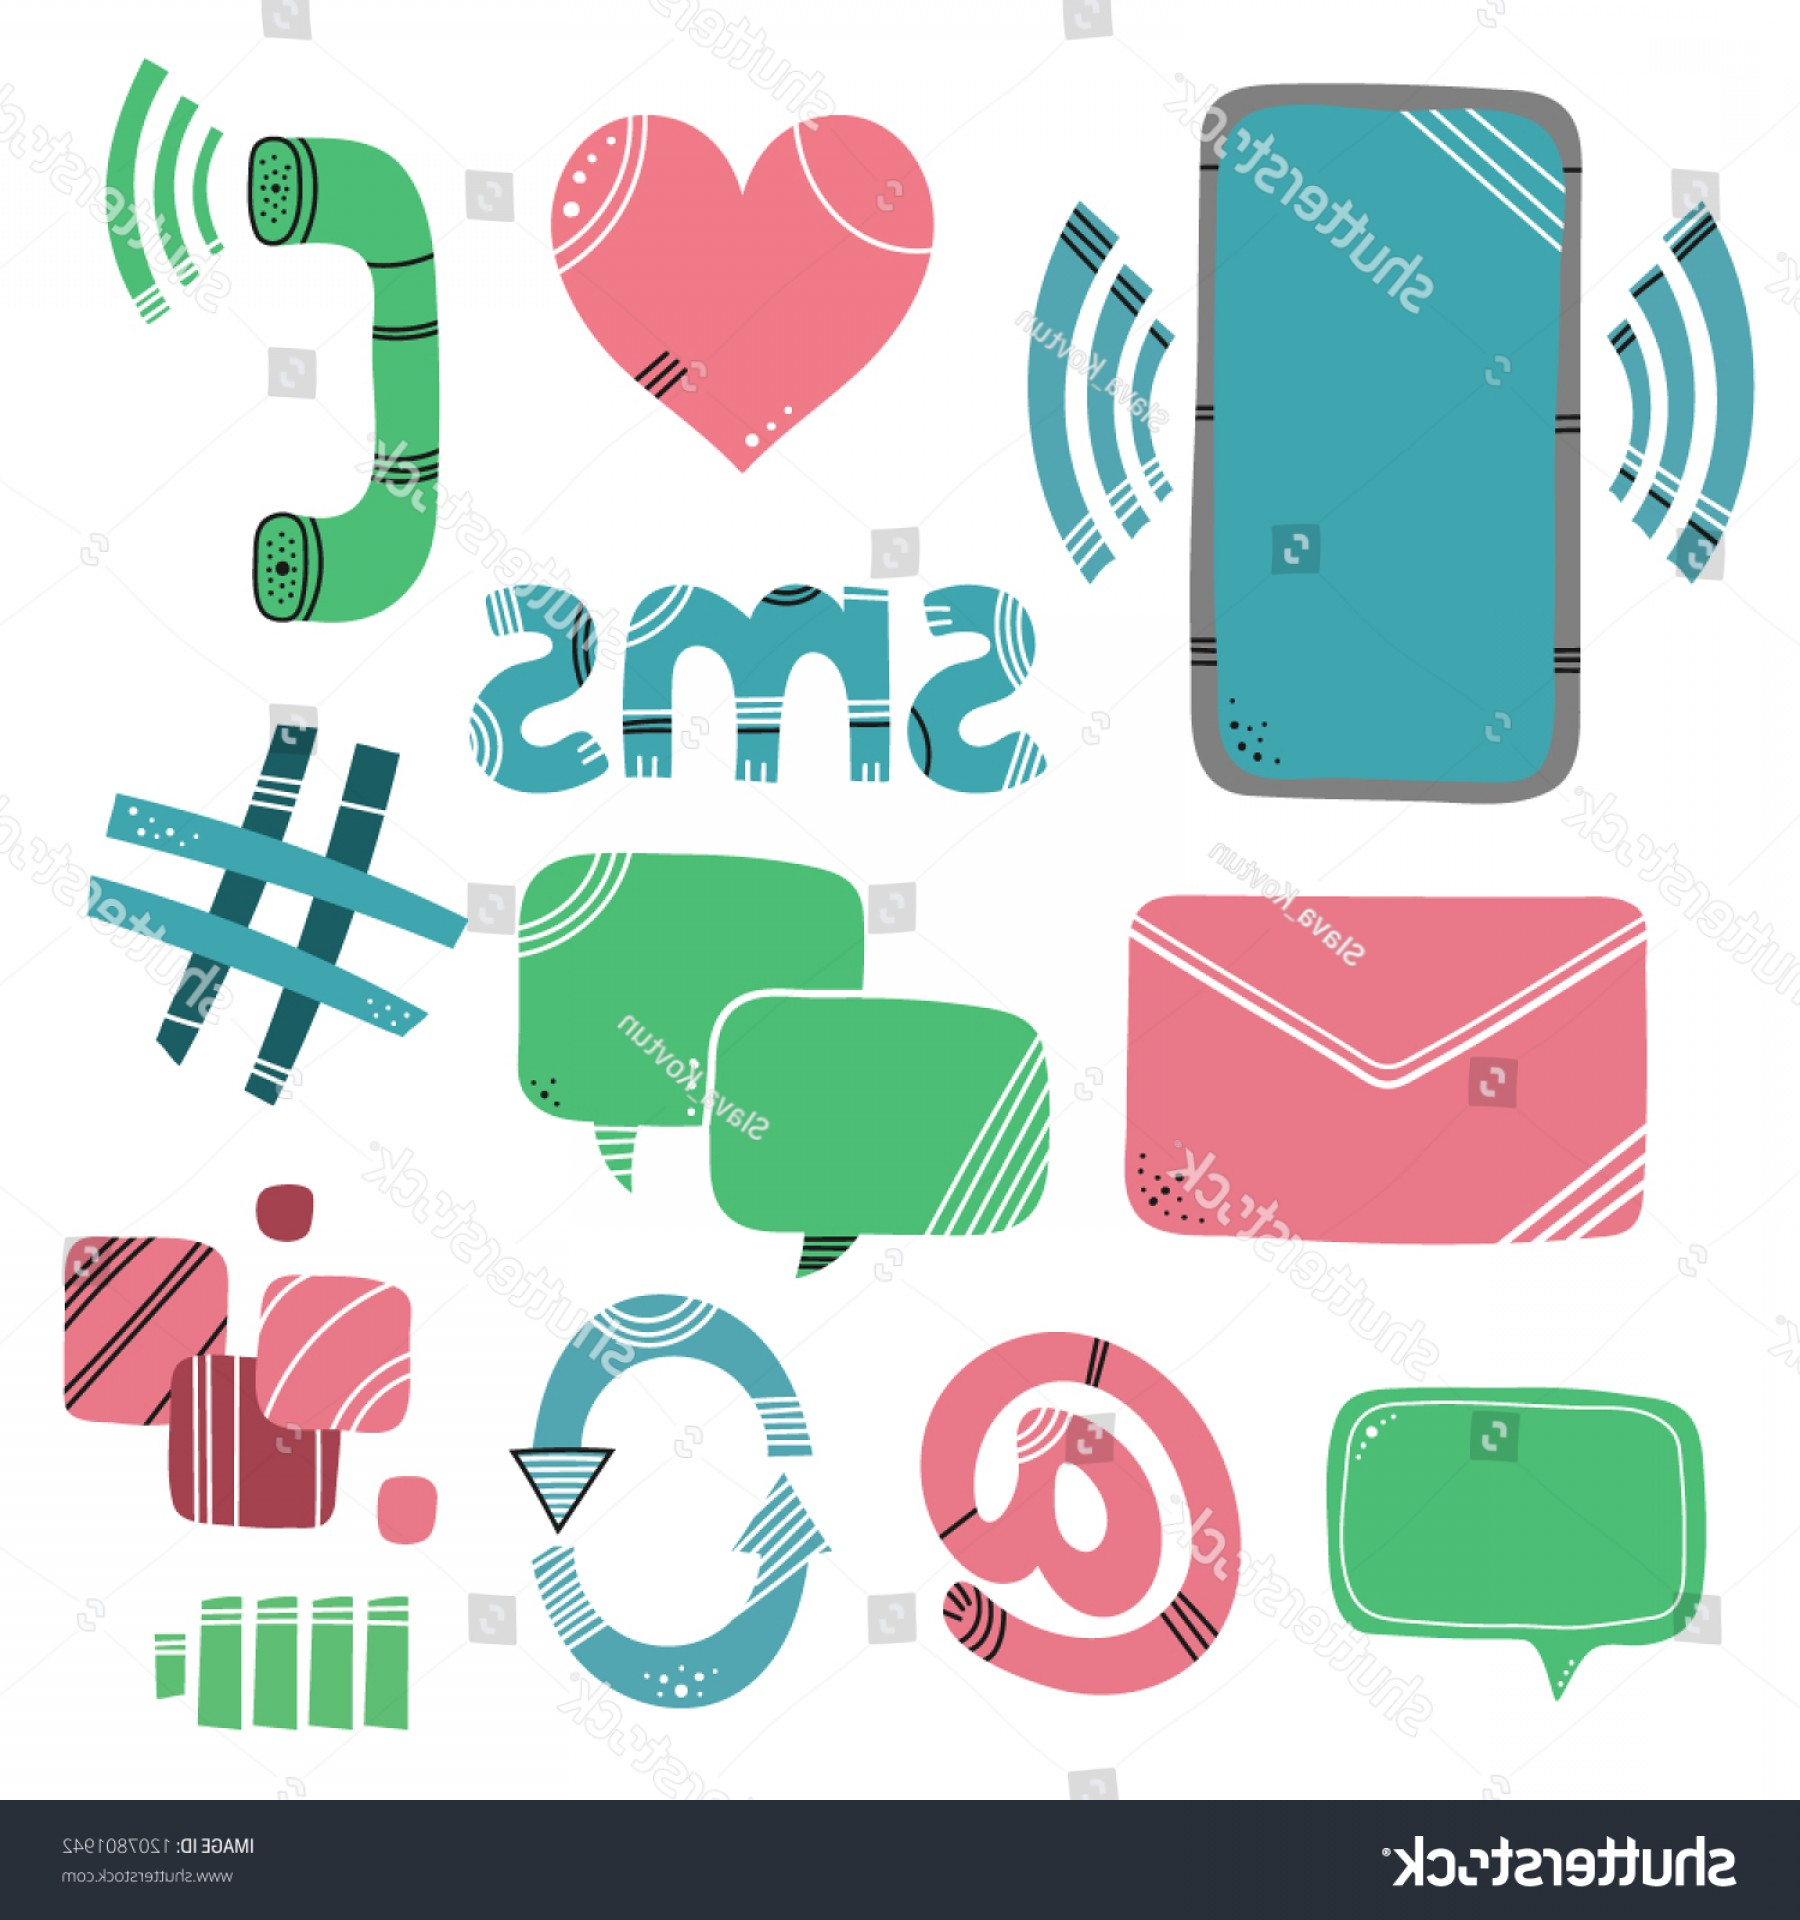 Tumblr App Icon Vector: Abstract Mobile Phone App Icons Illustration